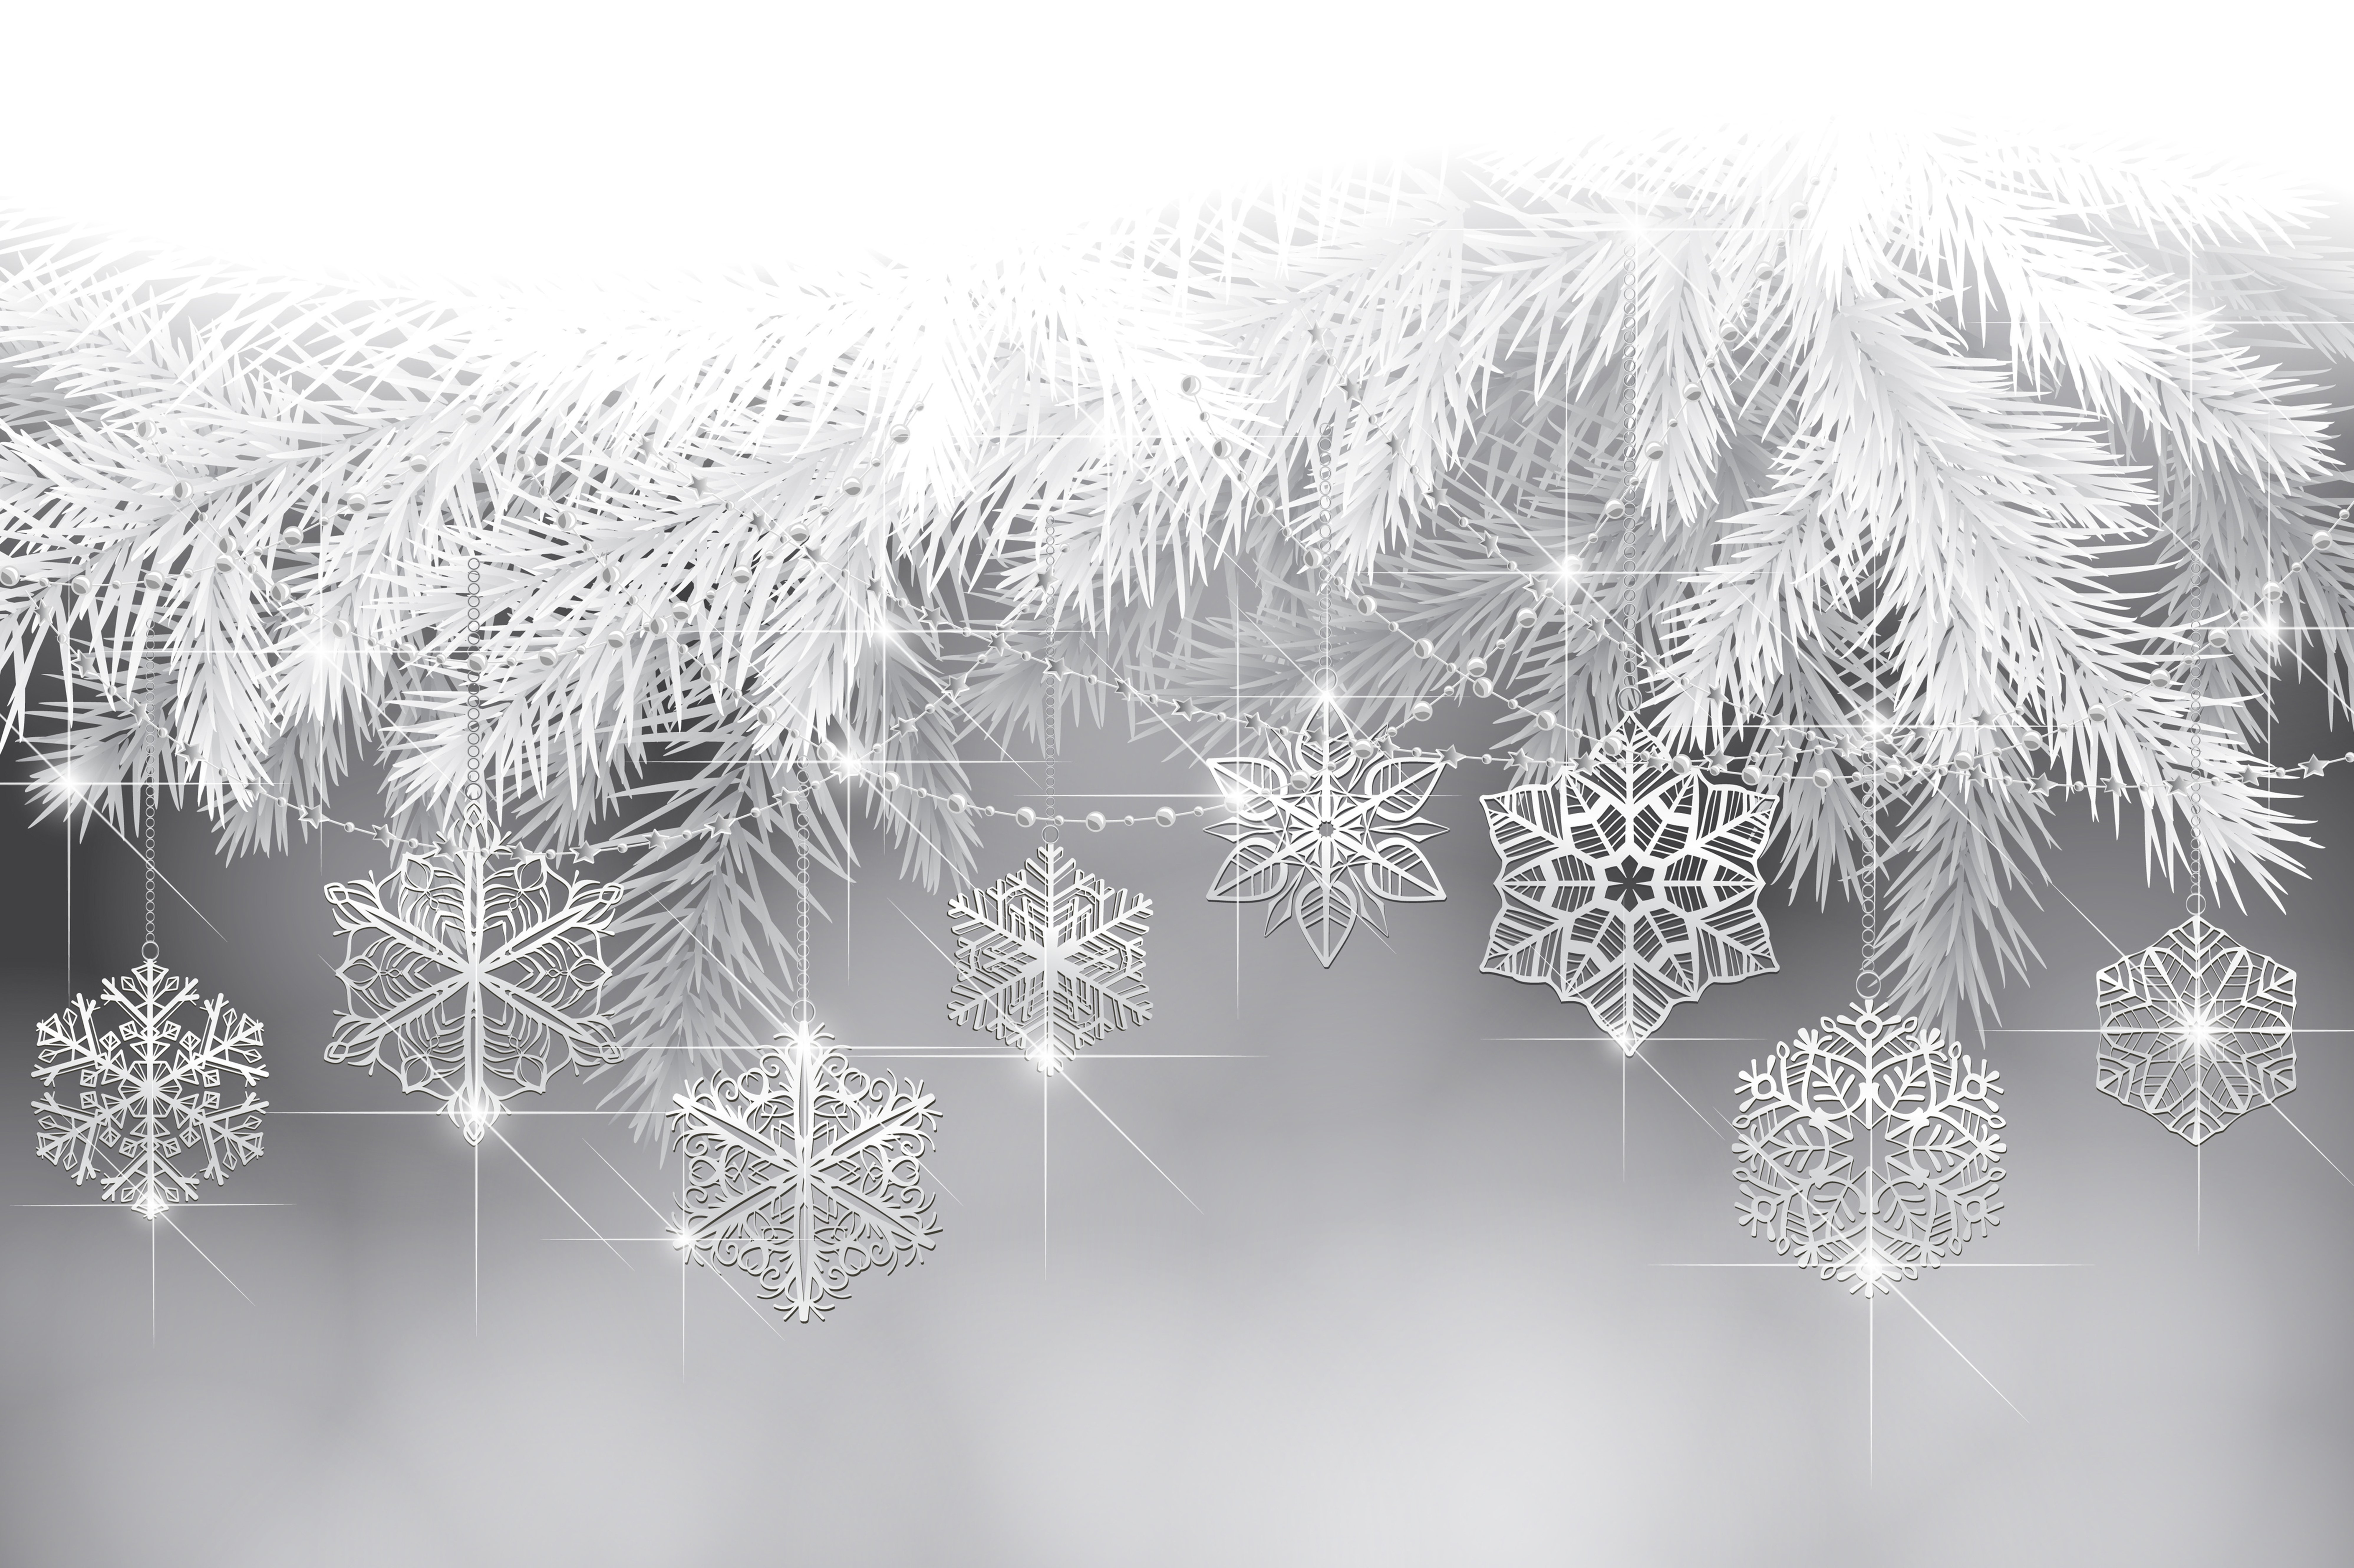 new year holiday snowflakes tree branches wallpaper 7988x5321 569743 wallpaperup